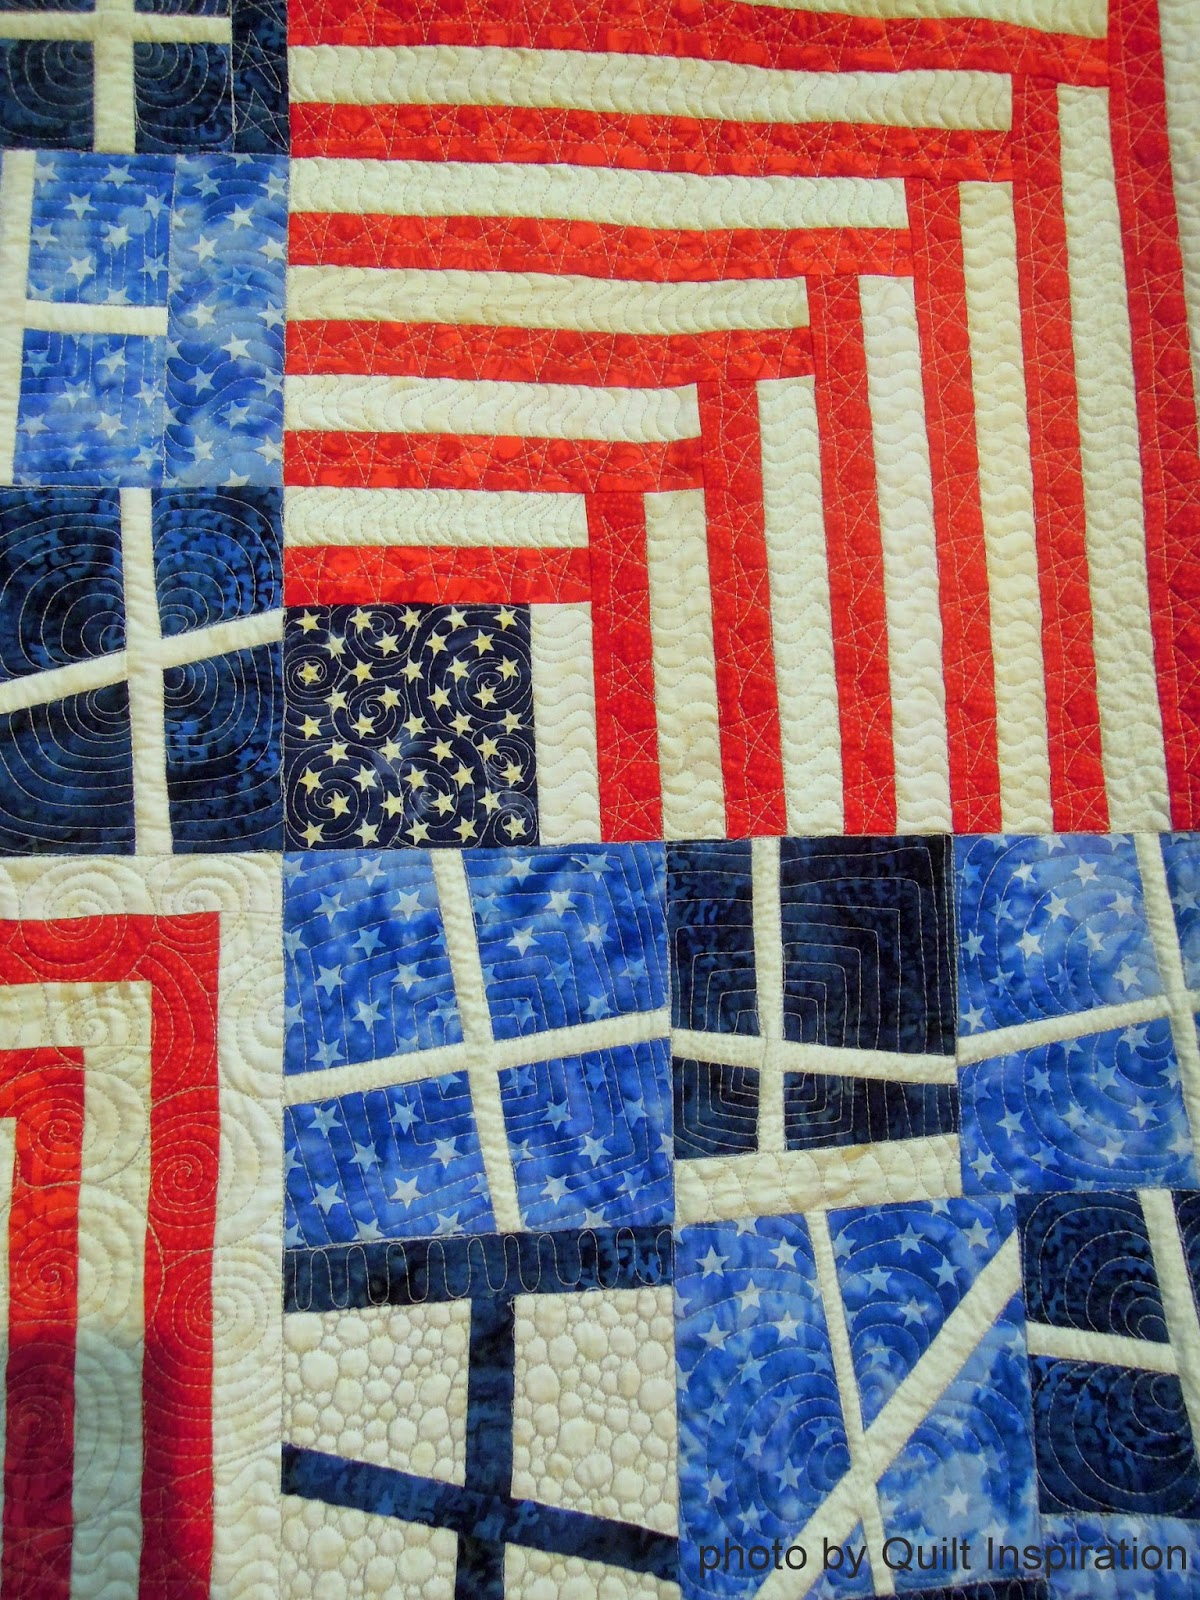 Quilt Inspiration: Quilted in Honor : Veterans Day